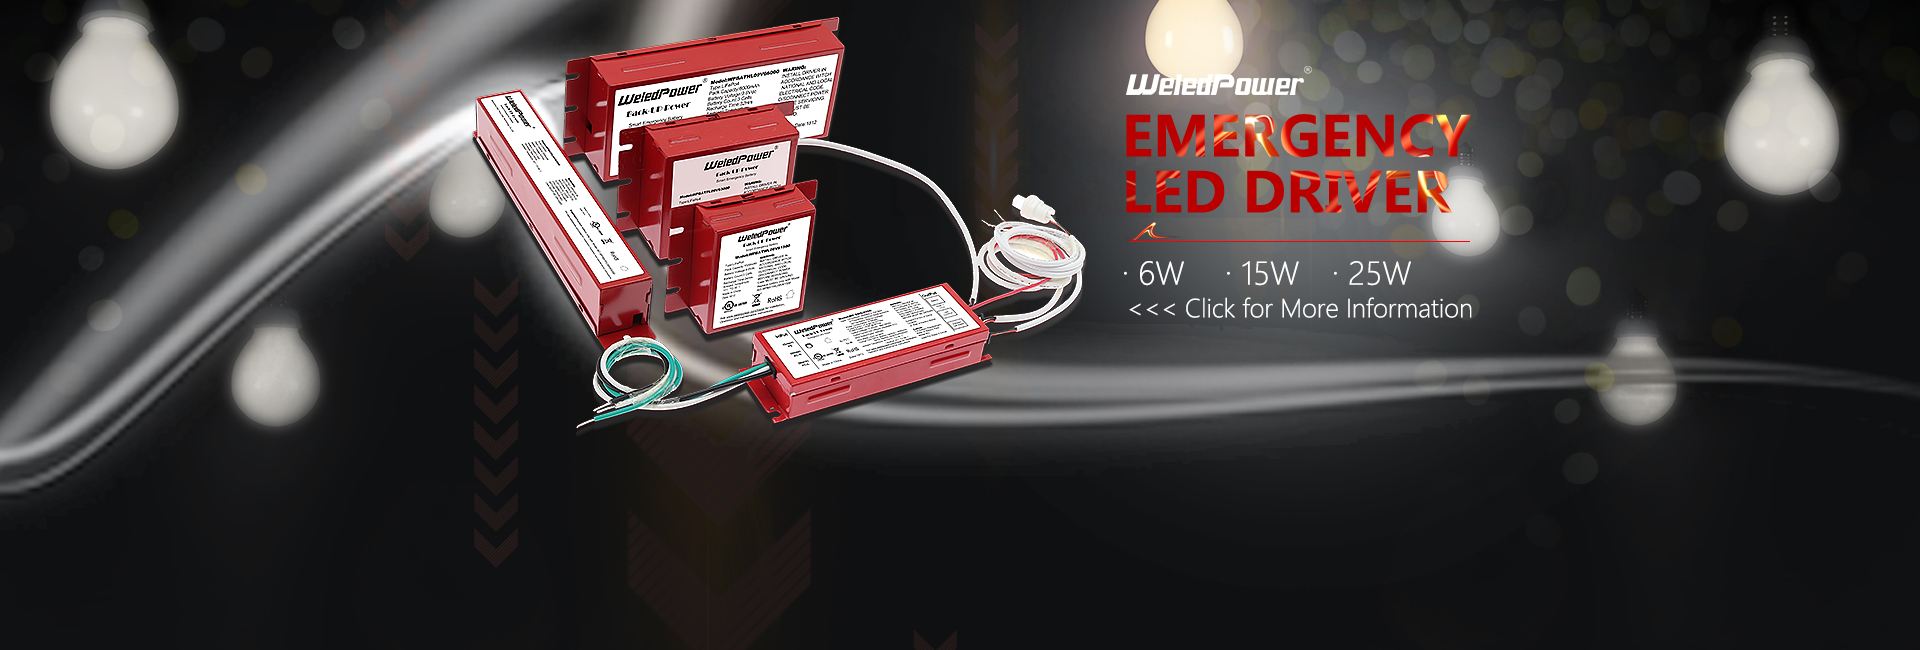 small size led emergency driver lighting system